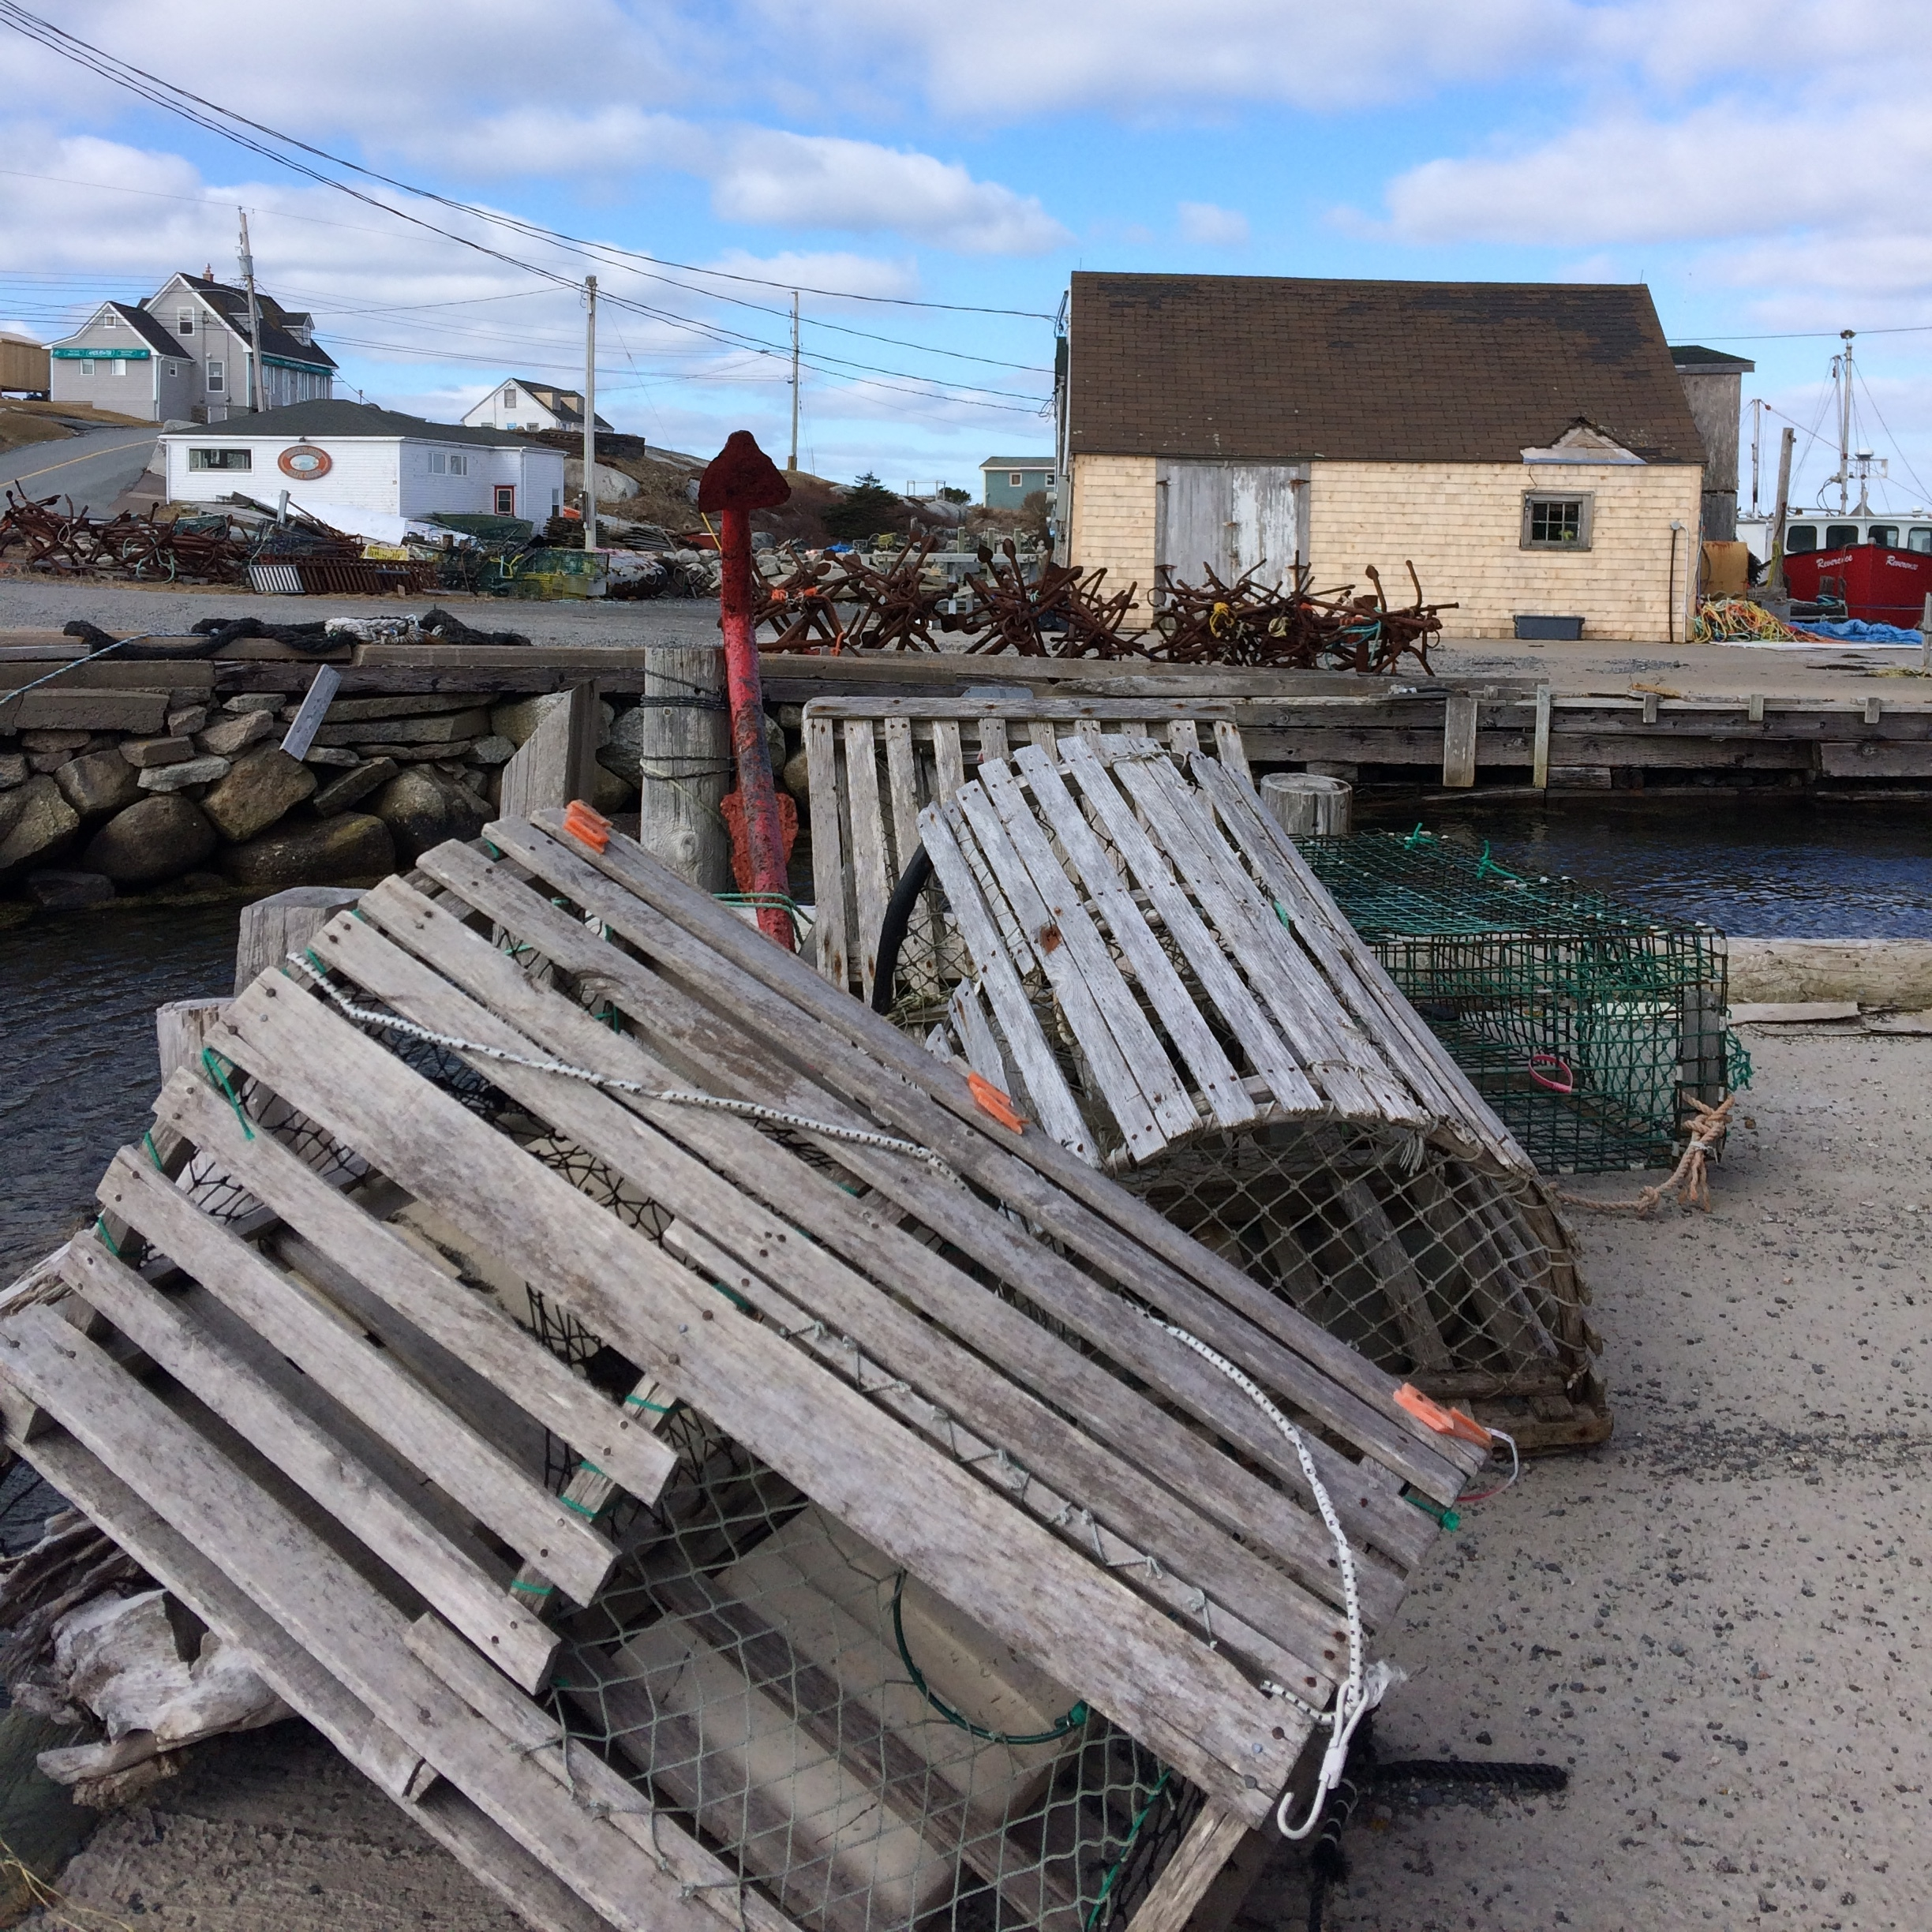 peggyscovelobstertraps